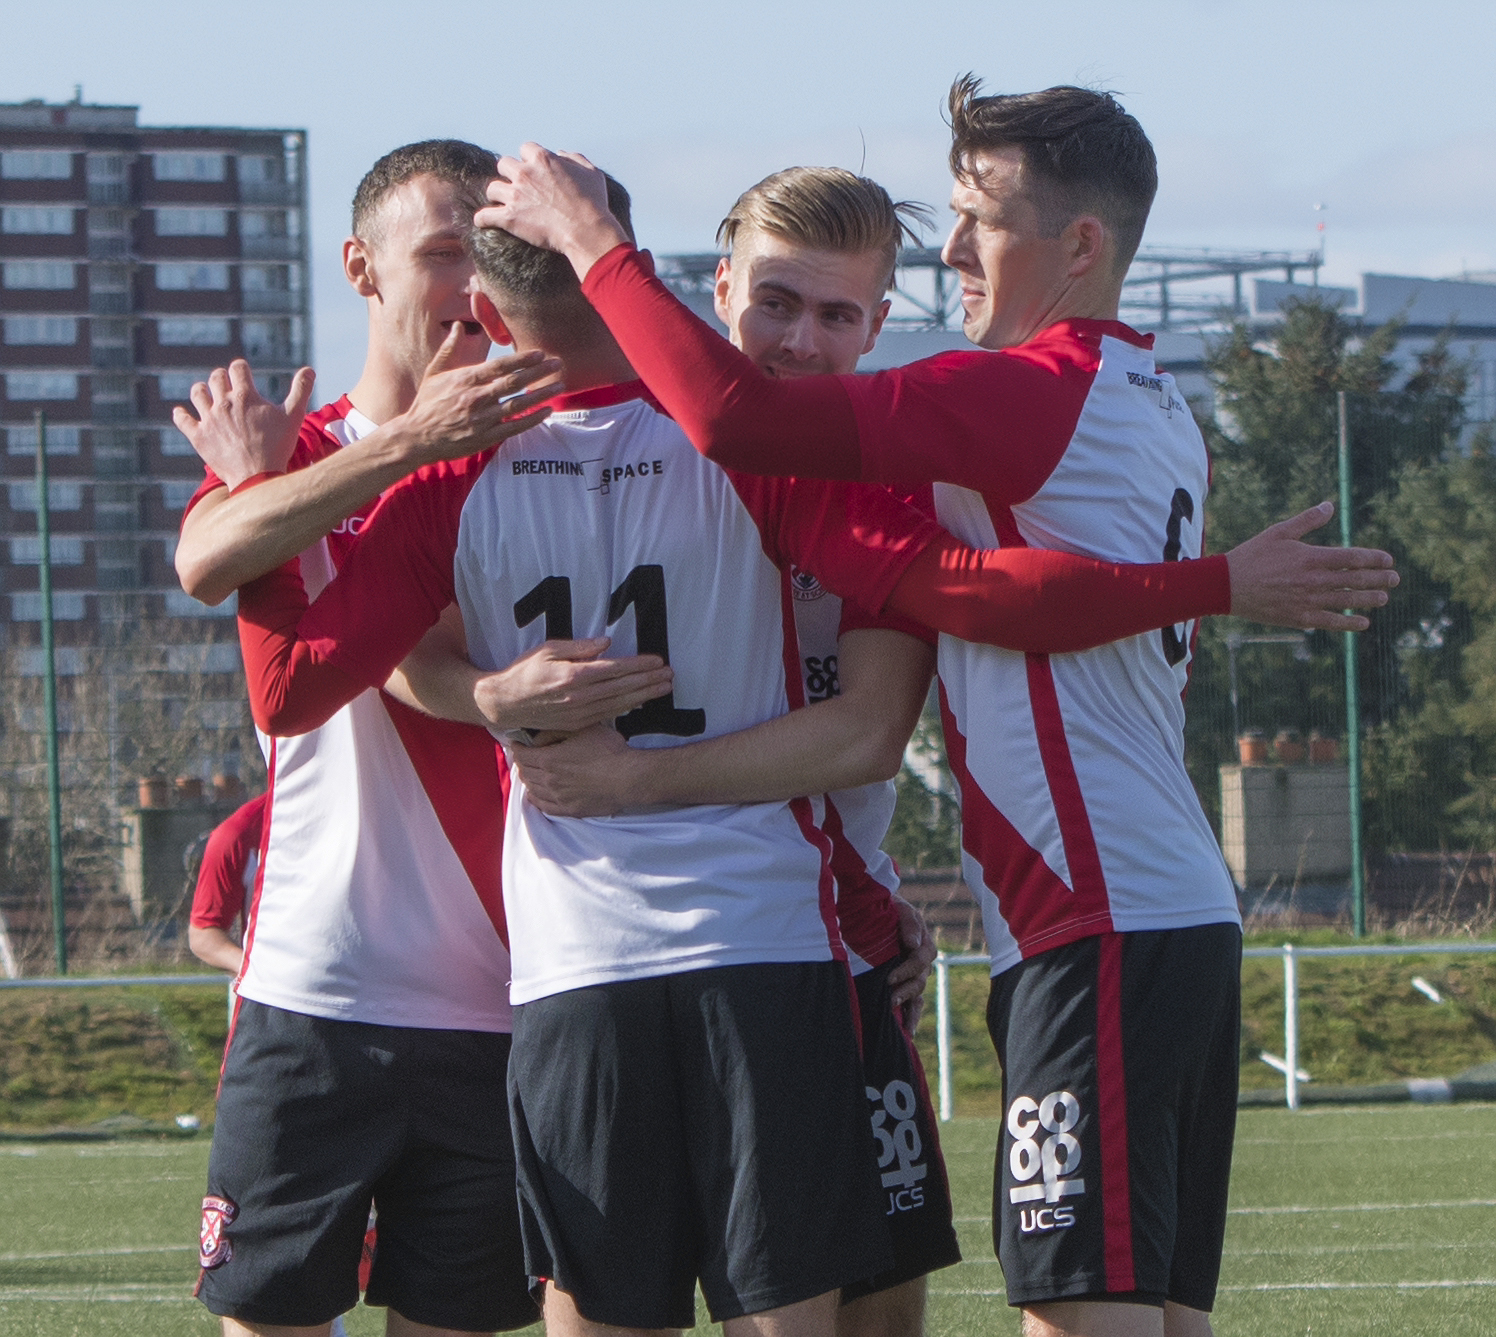 Clydebank 2 v 2 Cumnock McBookie.com West Region Premiership New Tinto Park Saturday 30th March 2019